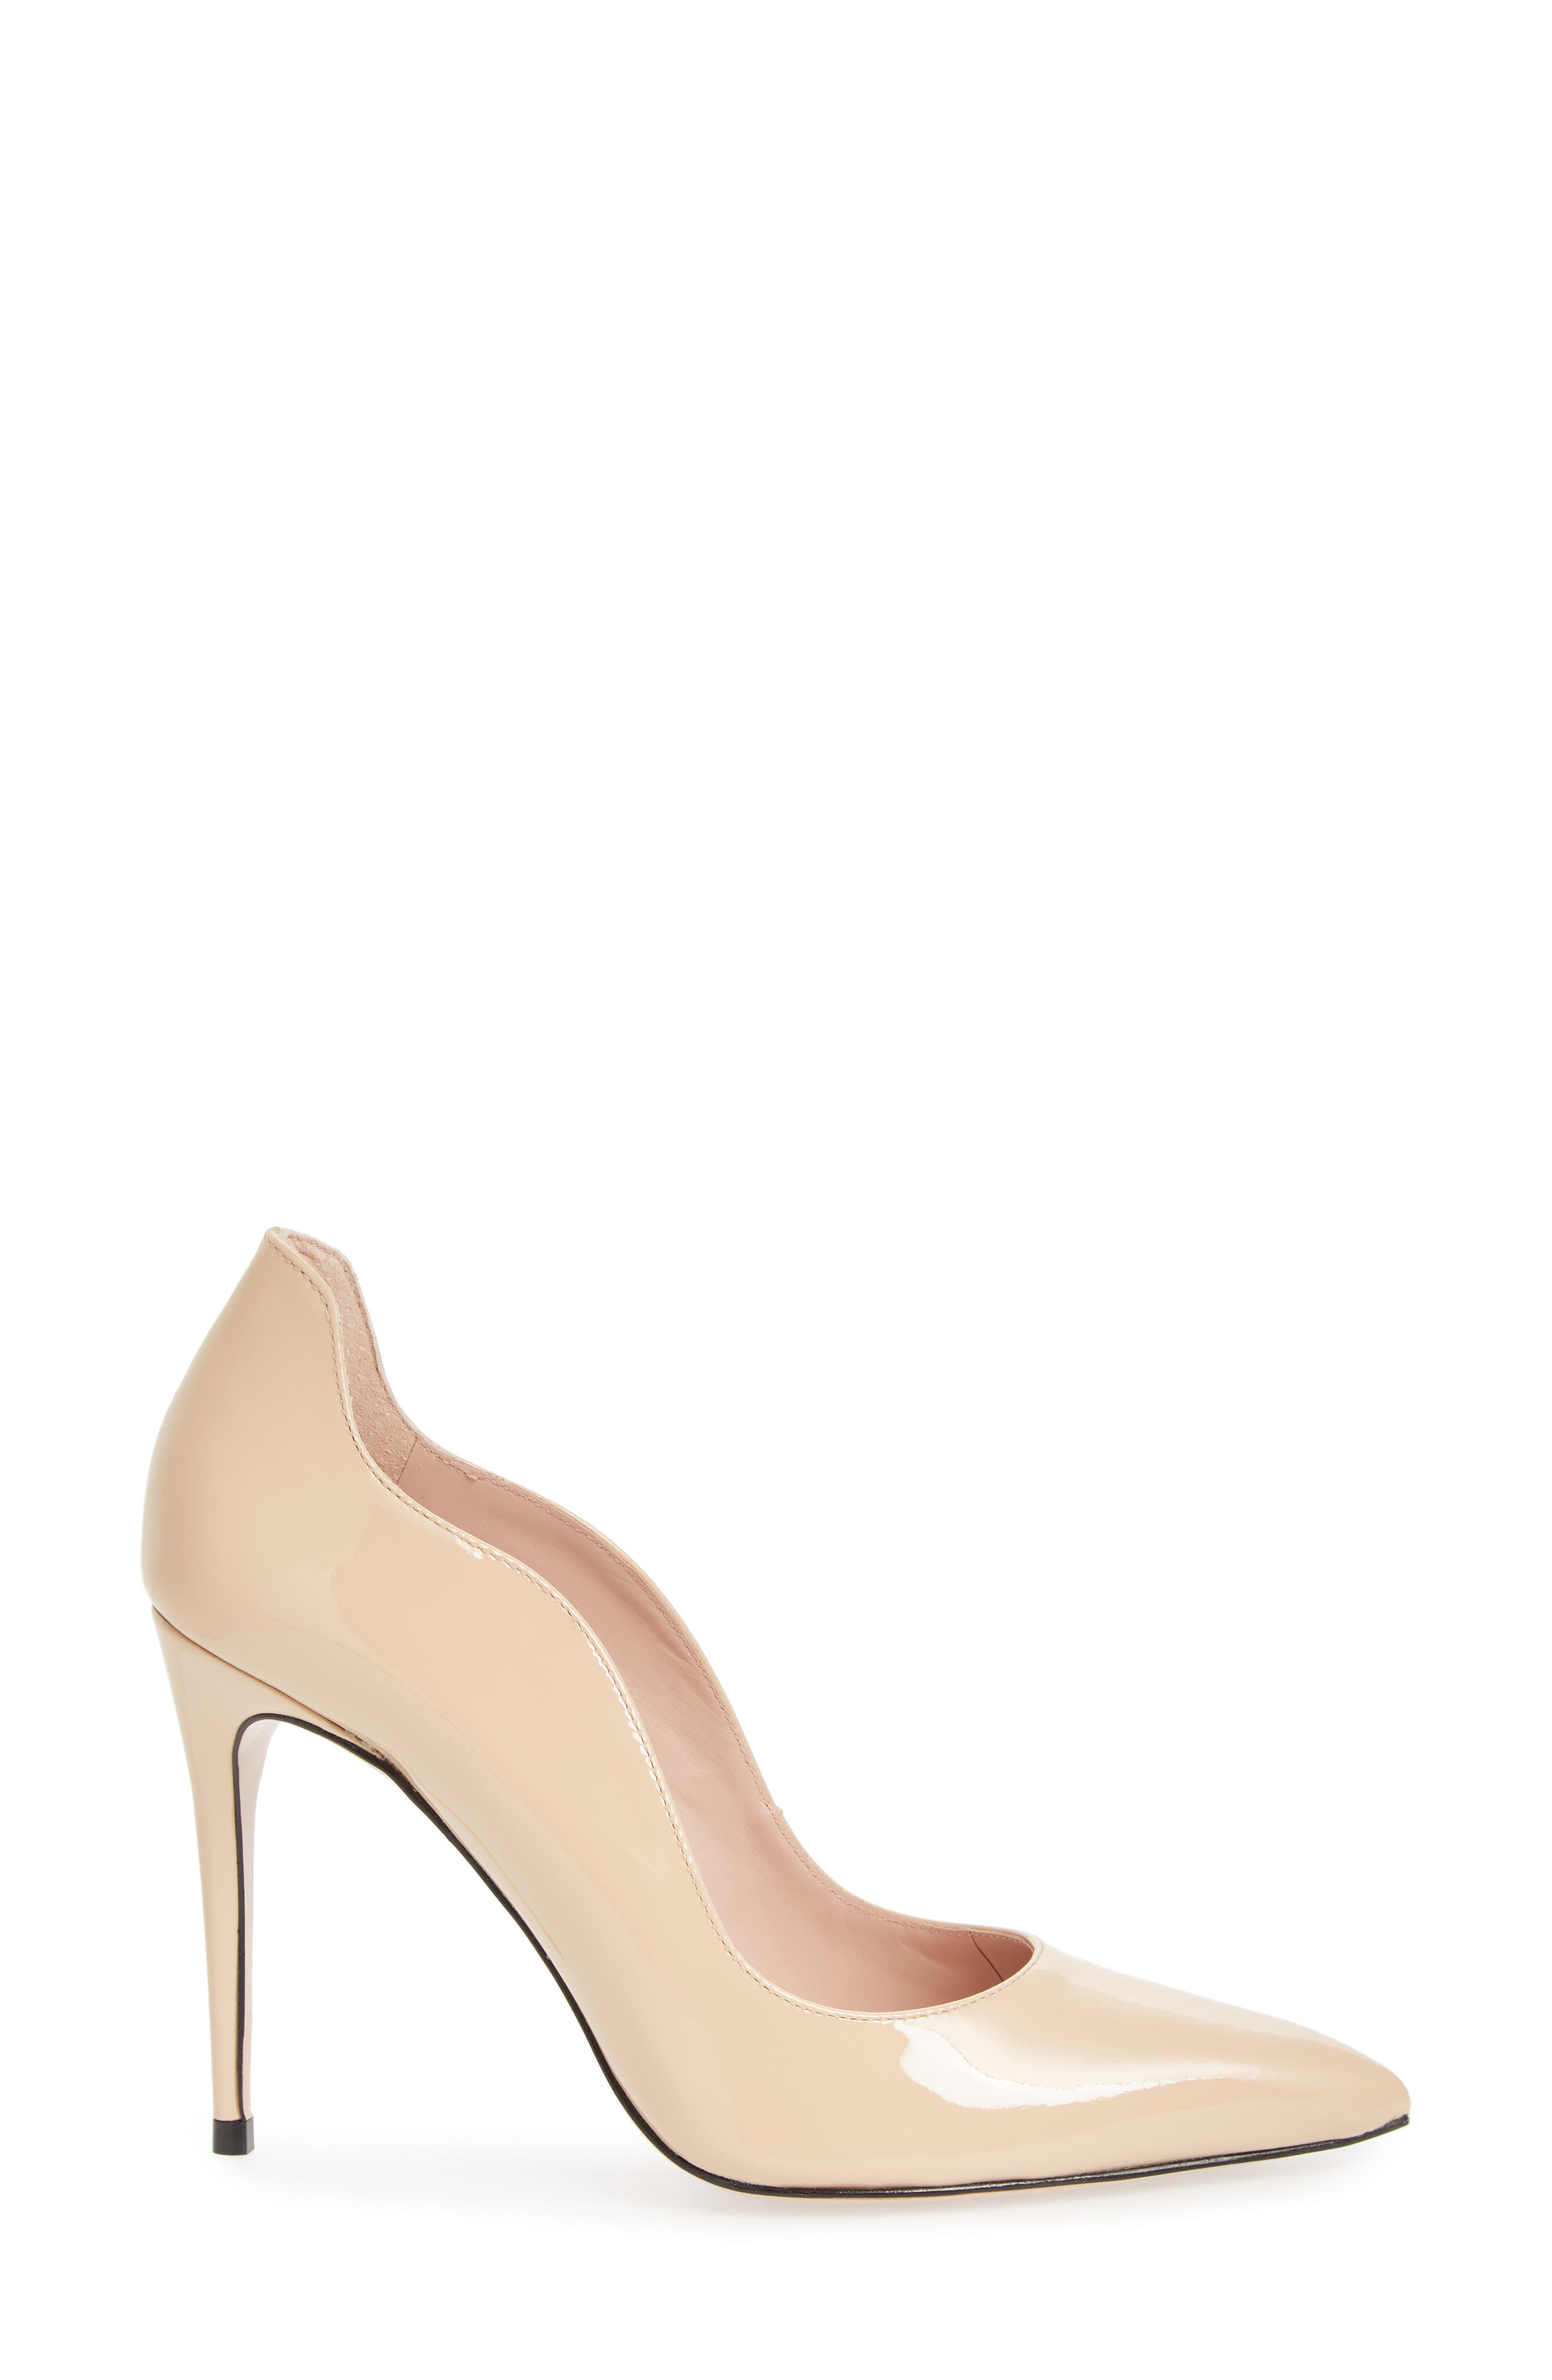 Anika Curvy Pump,                             Alternate thumbnail 3, color,                             NUDE SUEDE